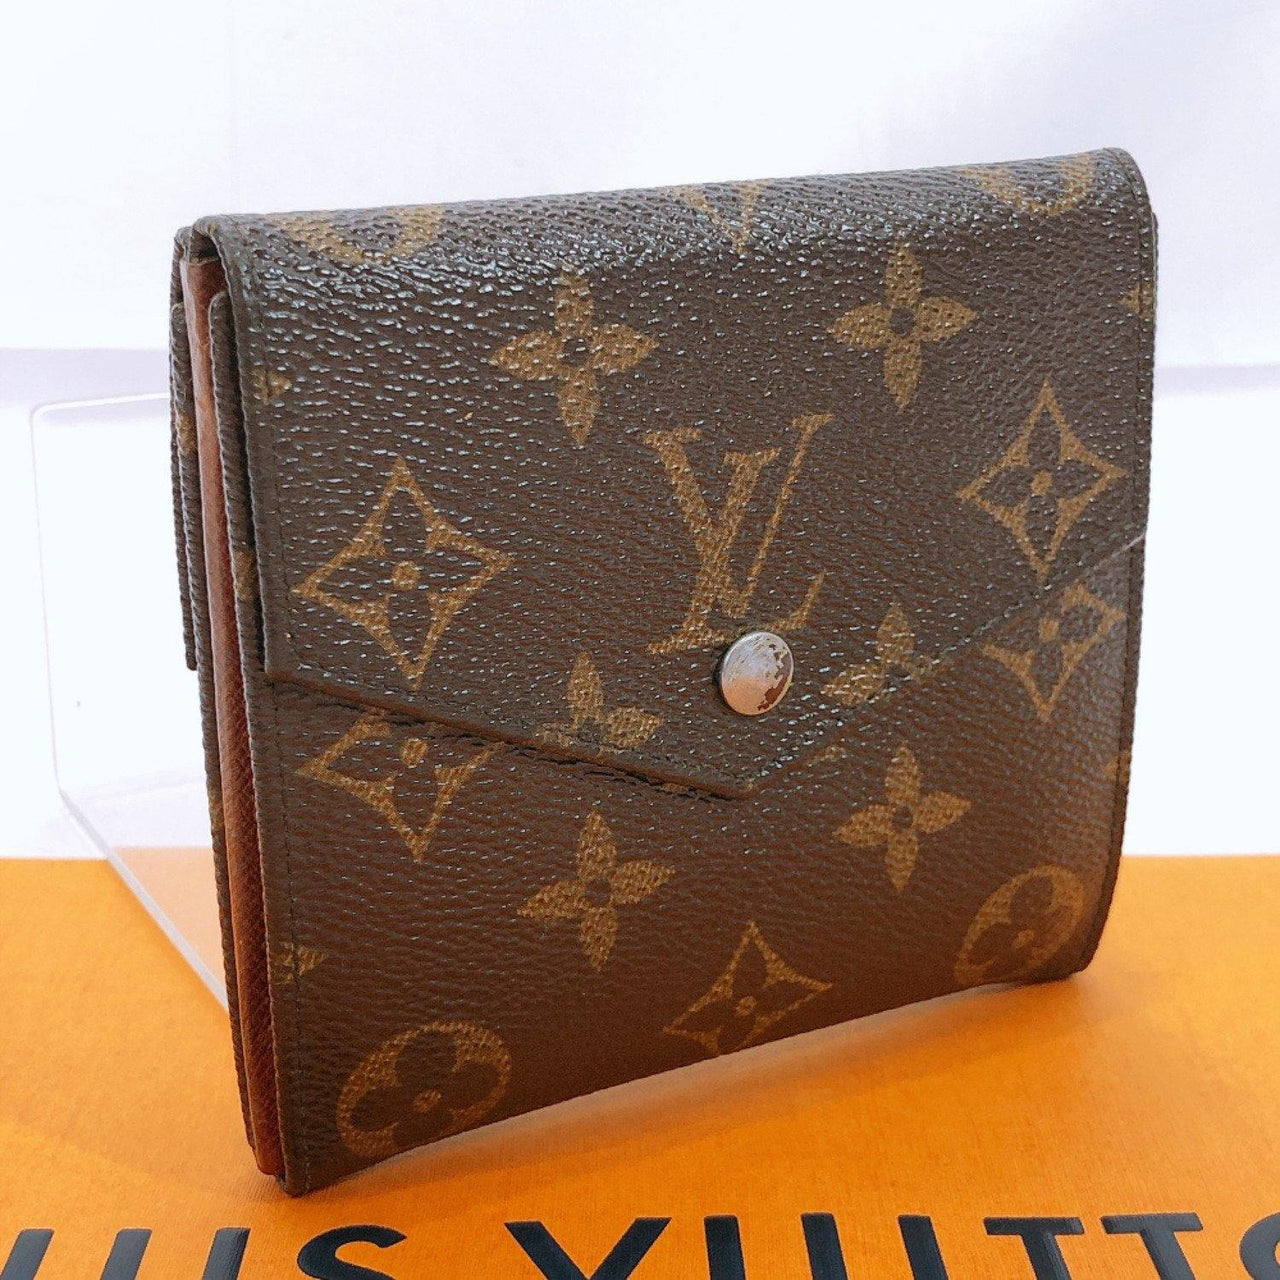 LOUIS VUITTON wallet M61660  Portonebier Cartes Crédit Double Sided Monogram canvas Brown Women Used